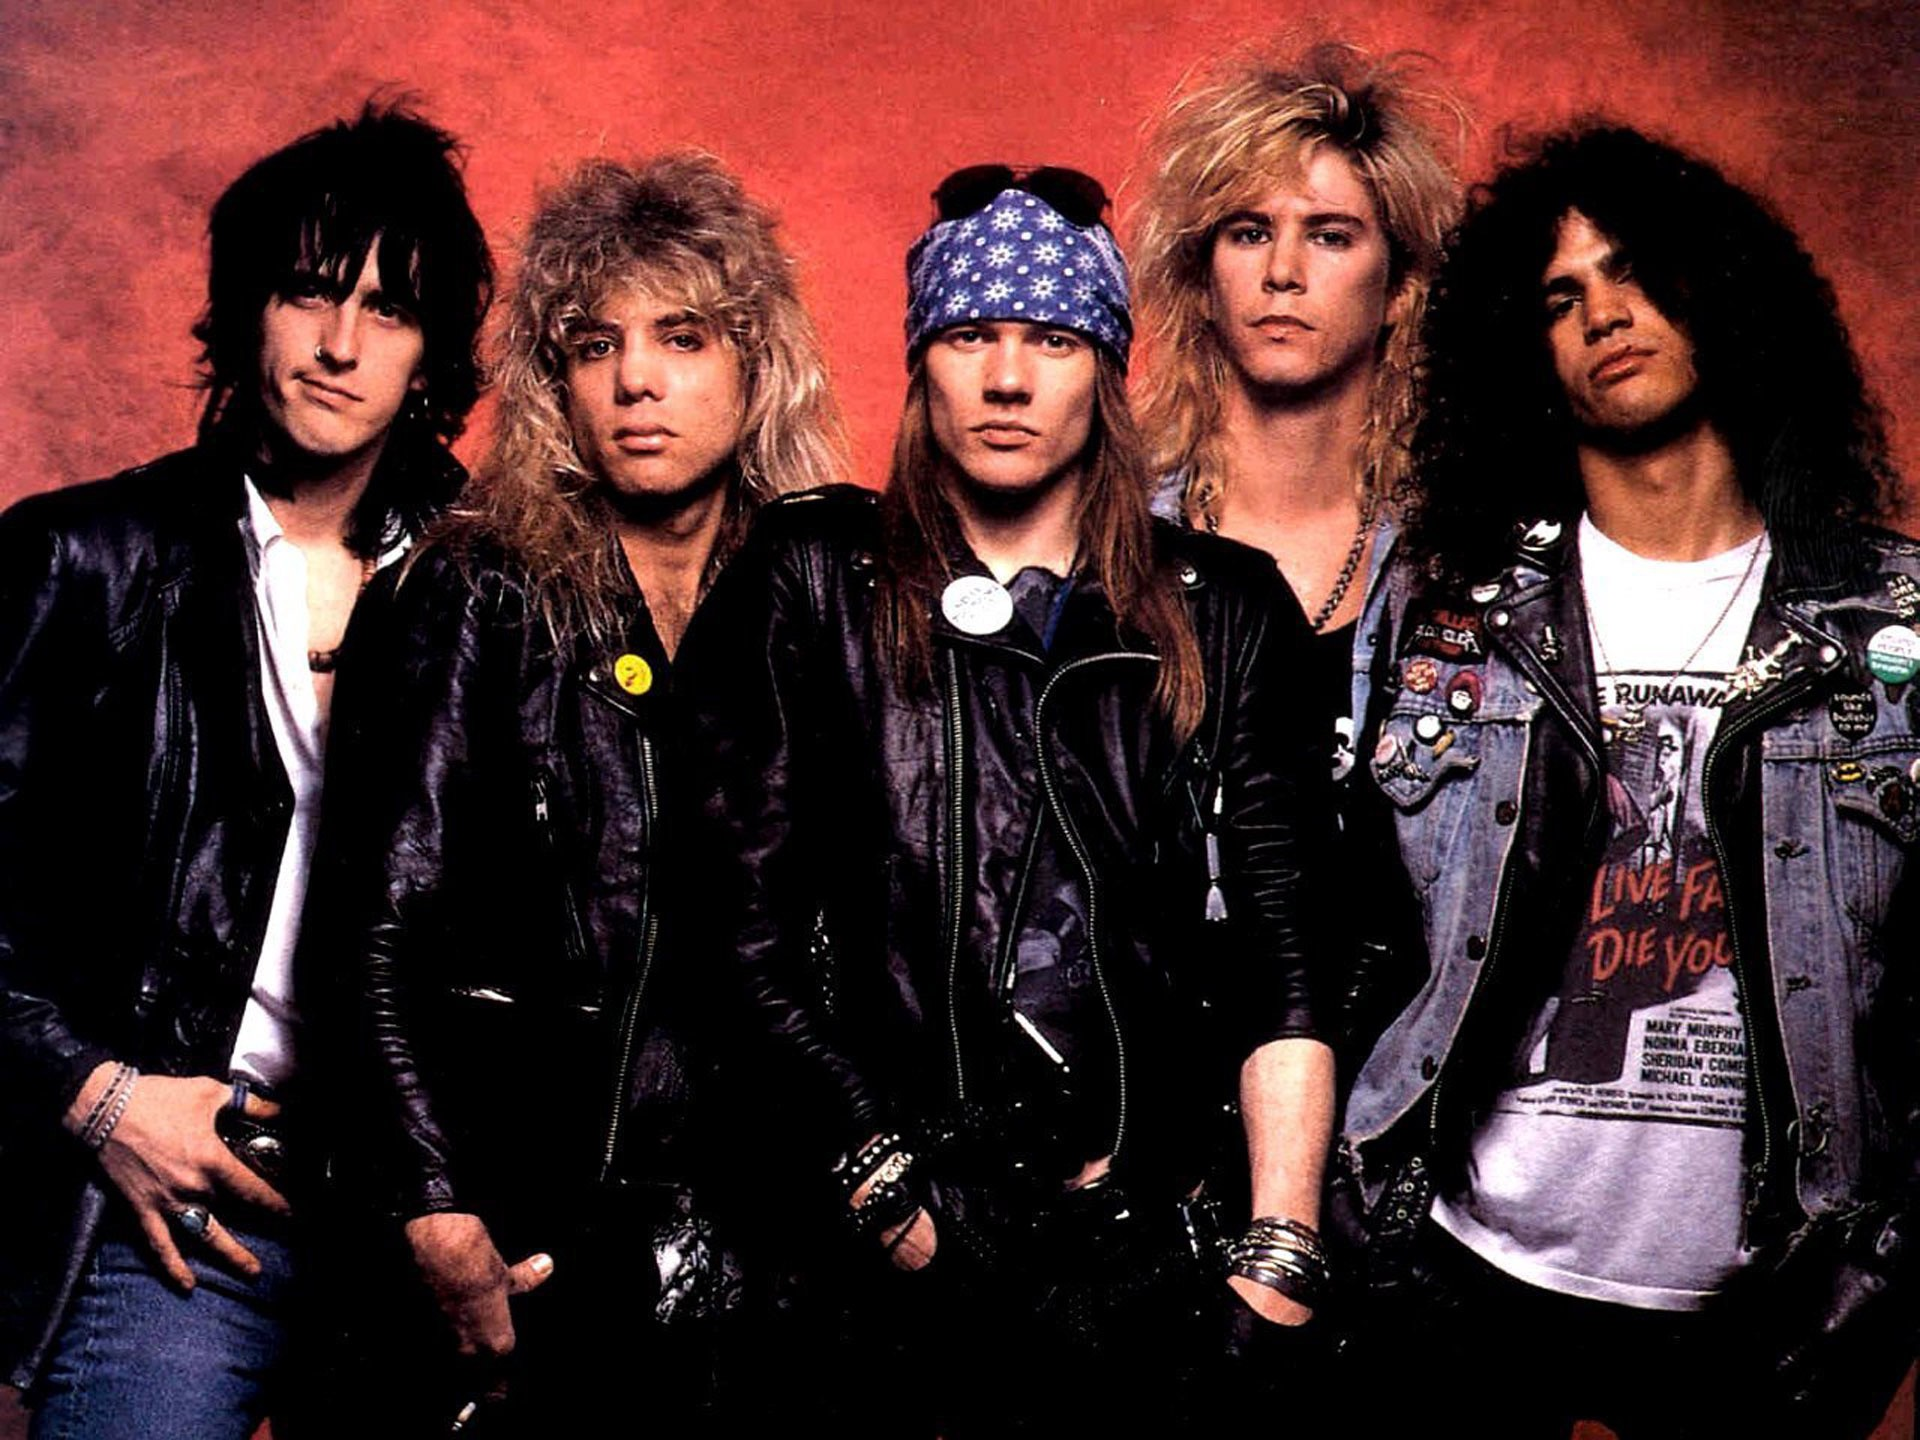 The Top Five Glam Metal Bands of All Time - NADblog